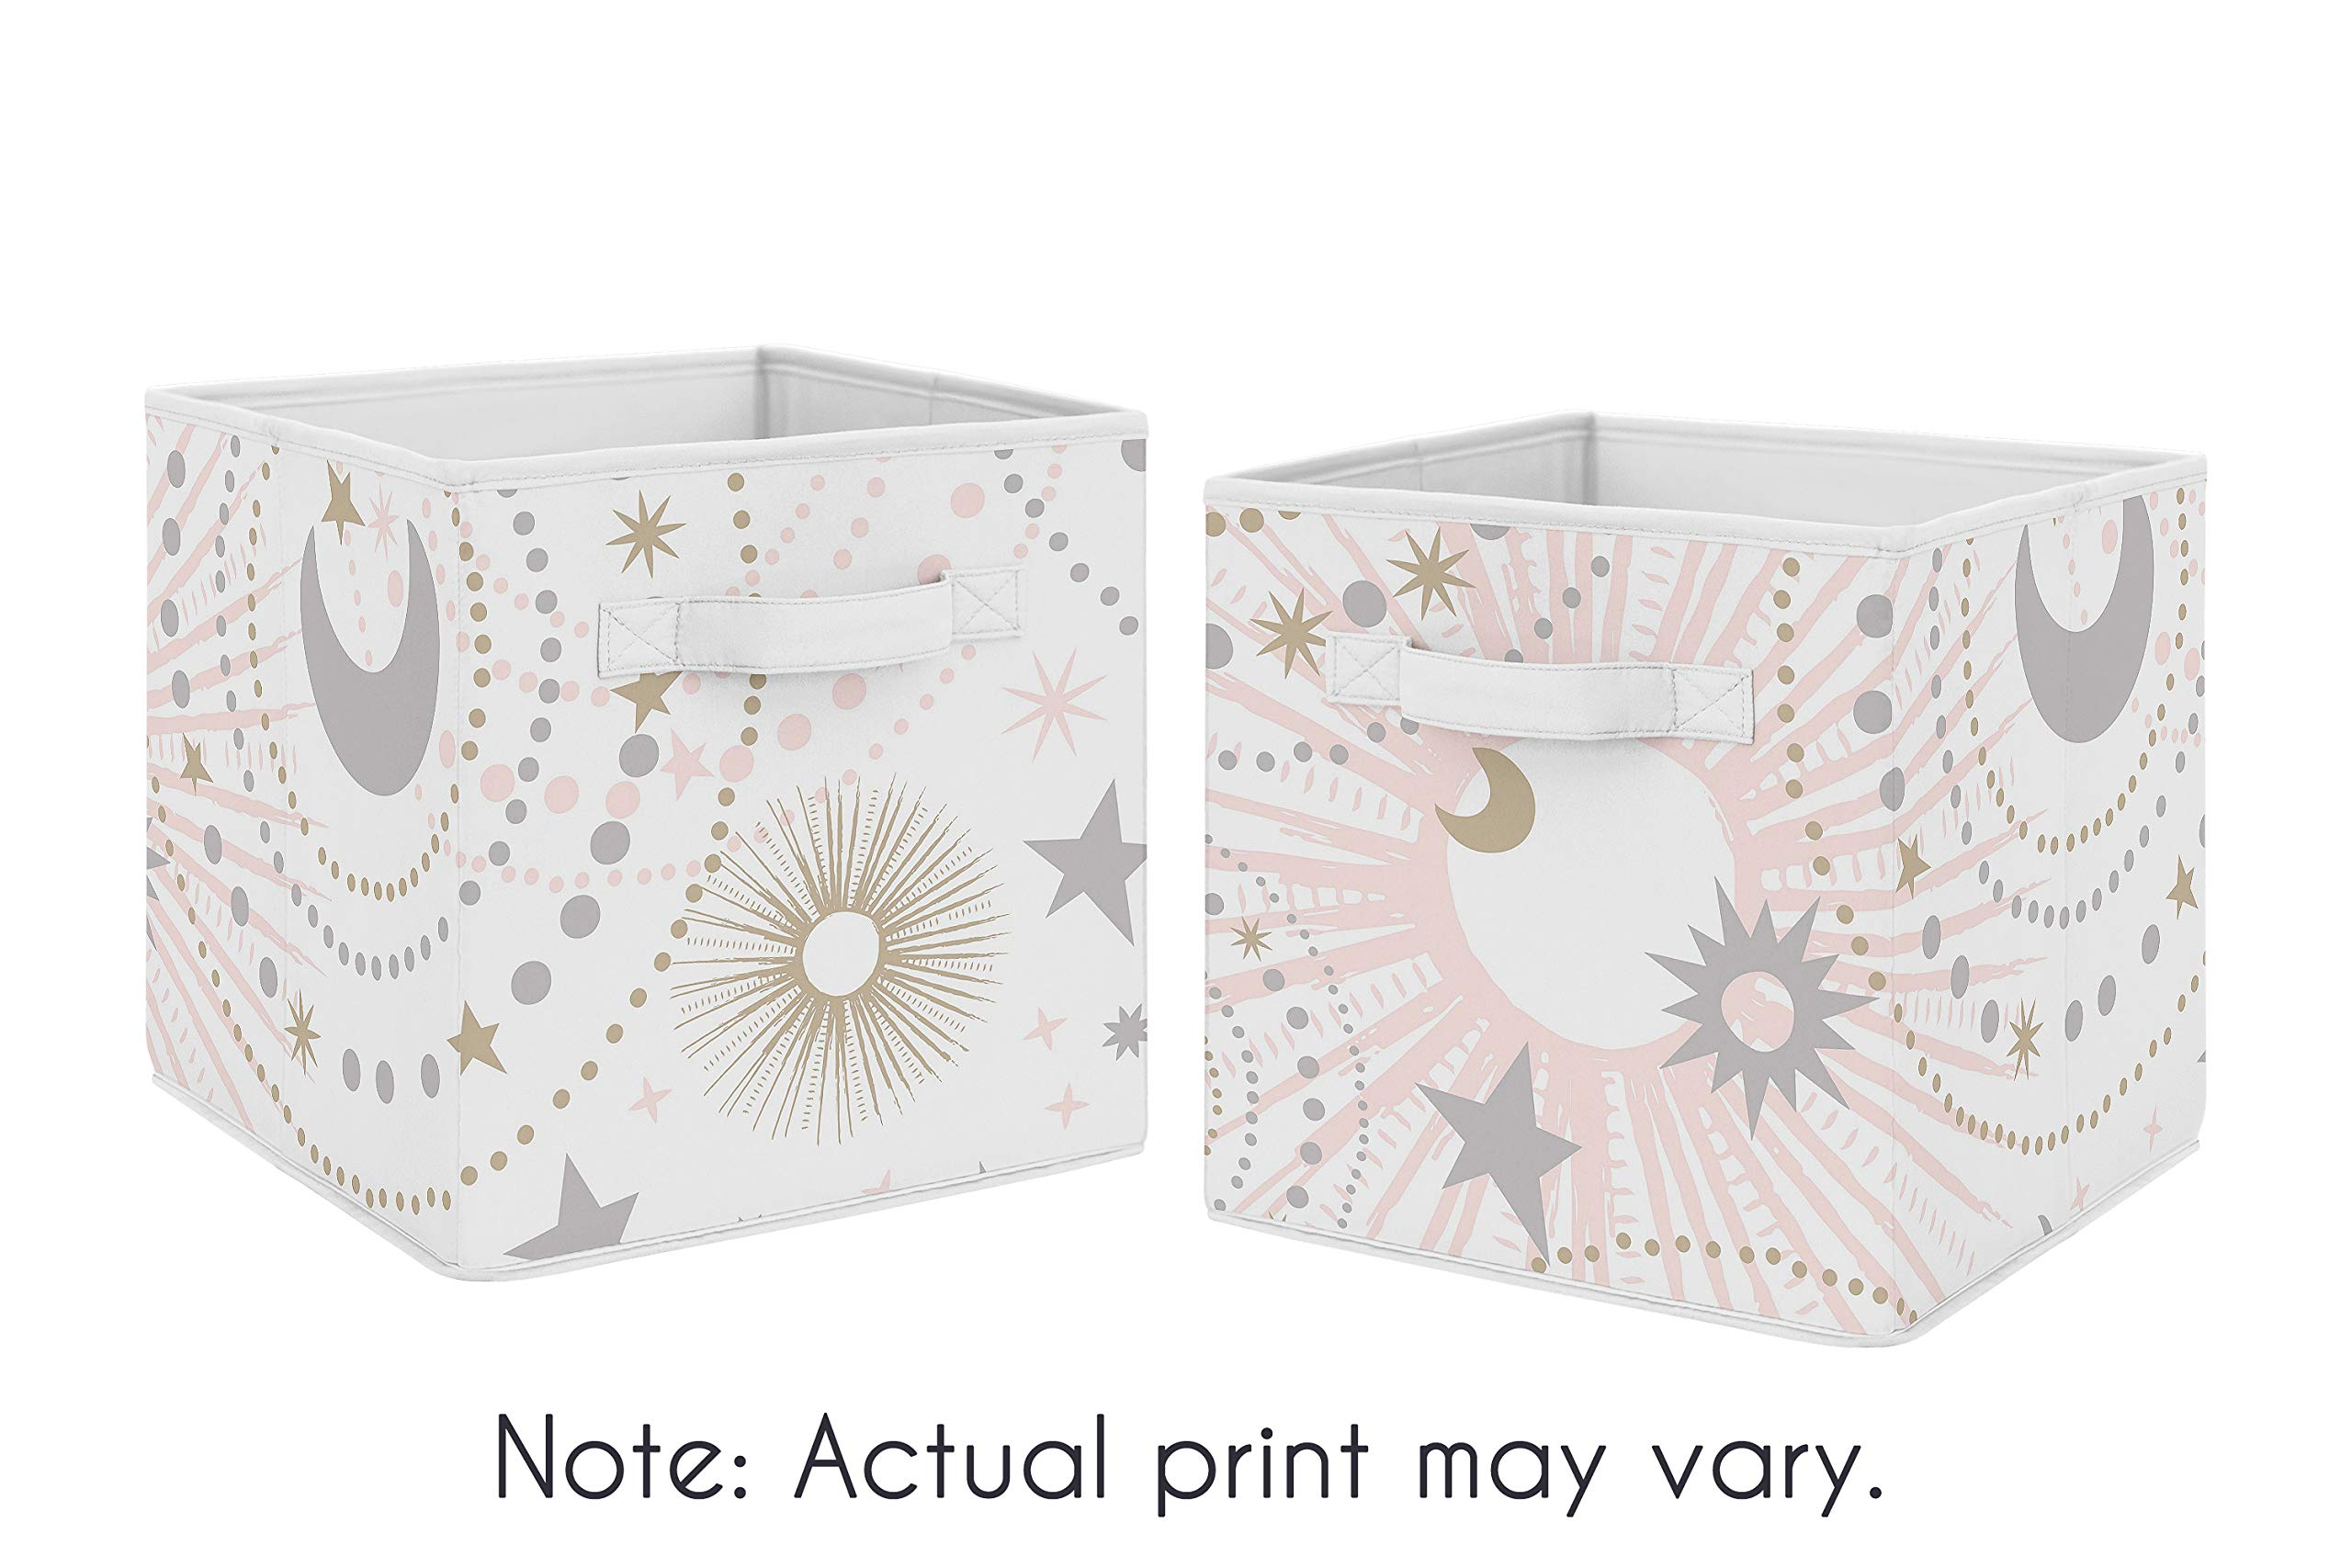 Sweet Jojo Designs Blush Pink, Gold and Grey Star and Moon Organizer Storage Bins for Celestial Collection - Set of 2 by Sweet Jojo Designs (Image #6)